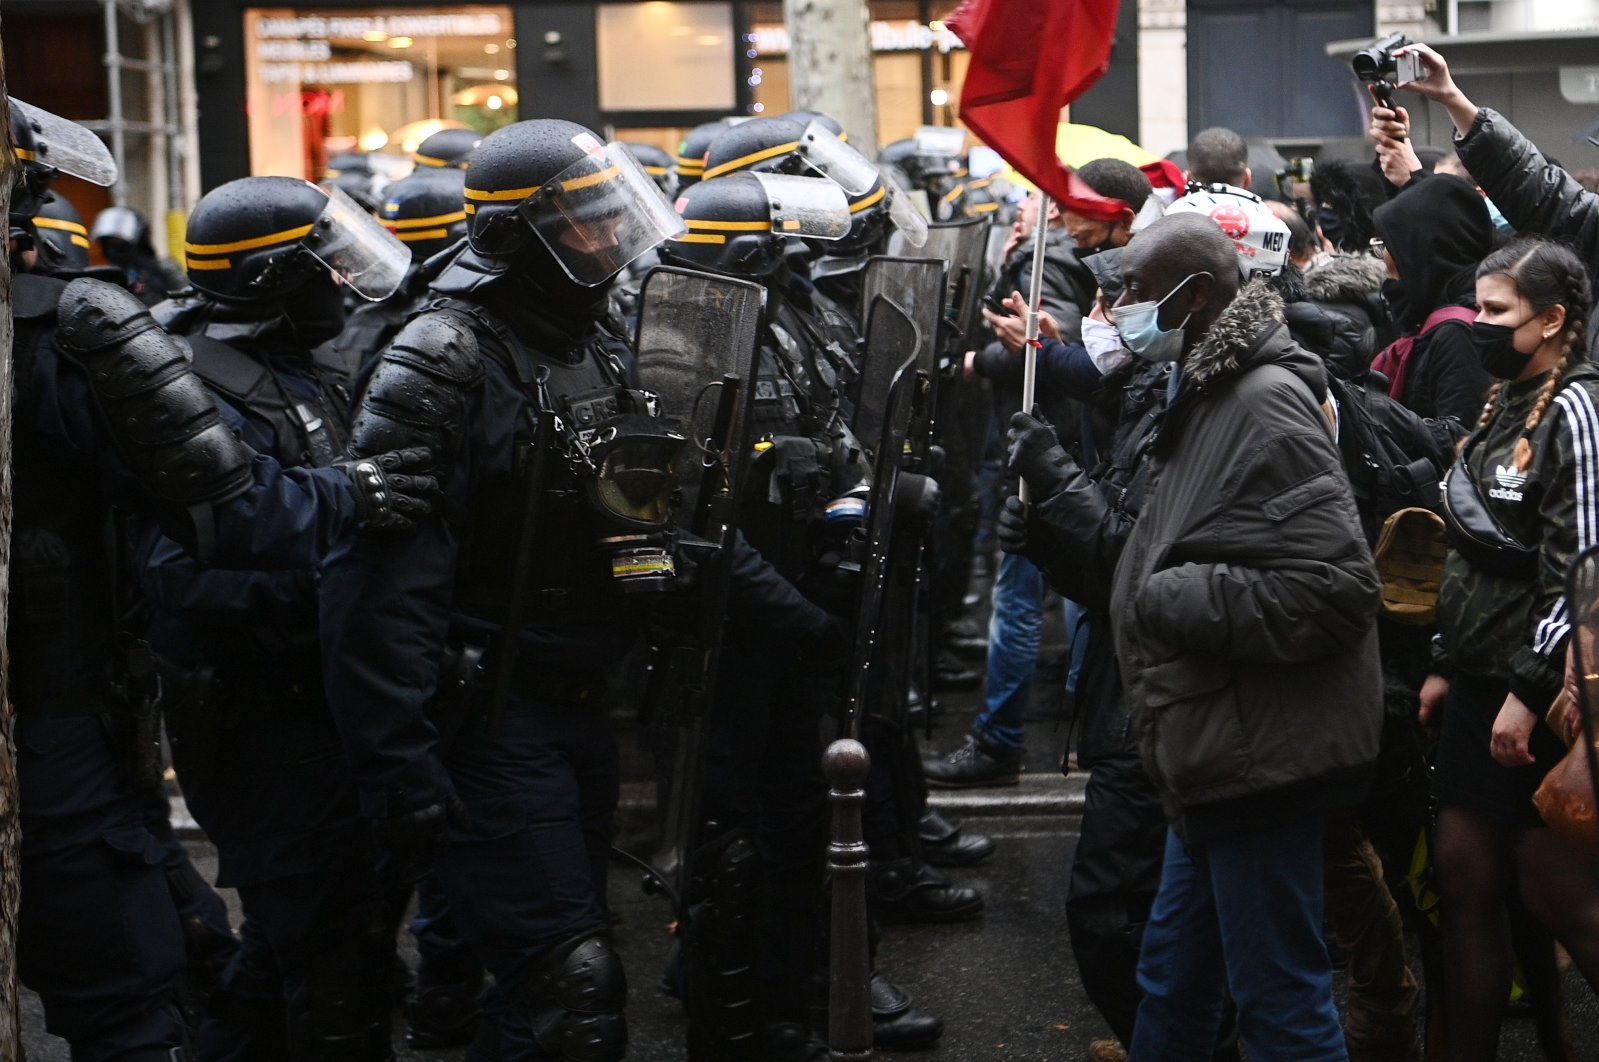 Protesters face CRS riot police during a demonstration in Paris on Dec. 12, 2020. (AFP Photo)